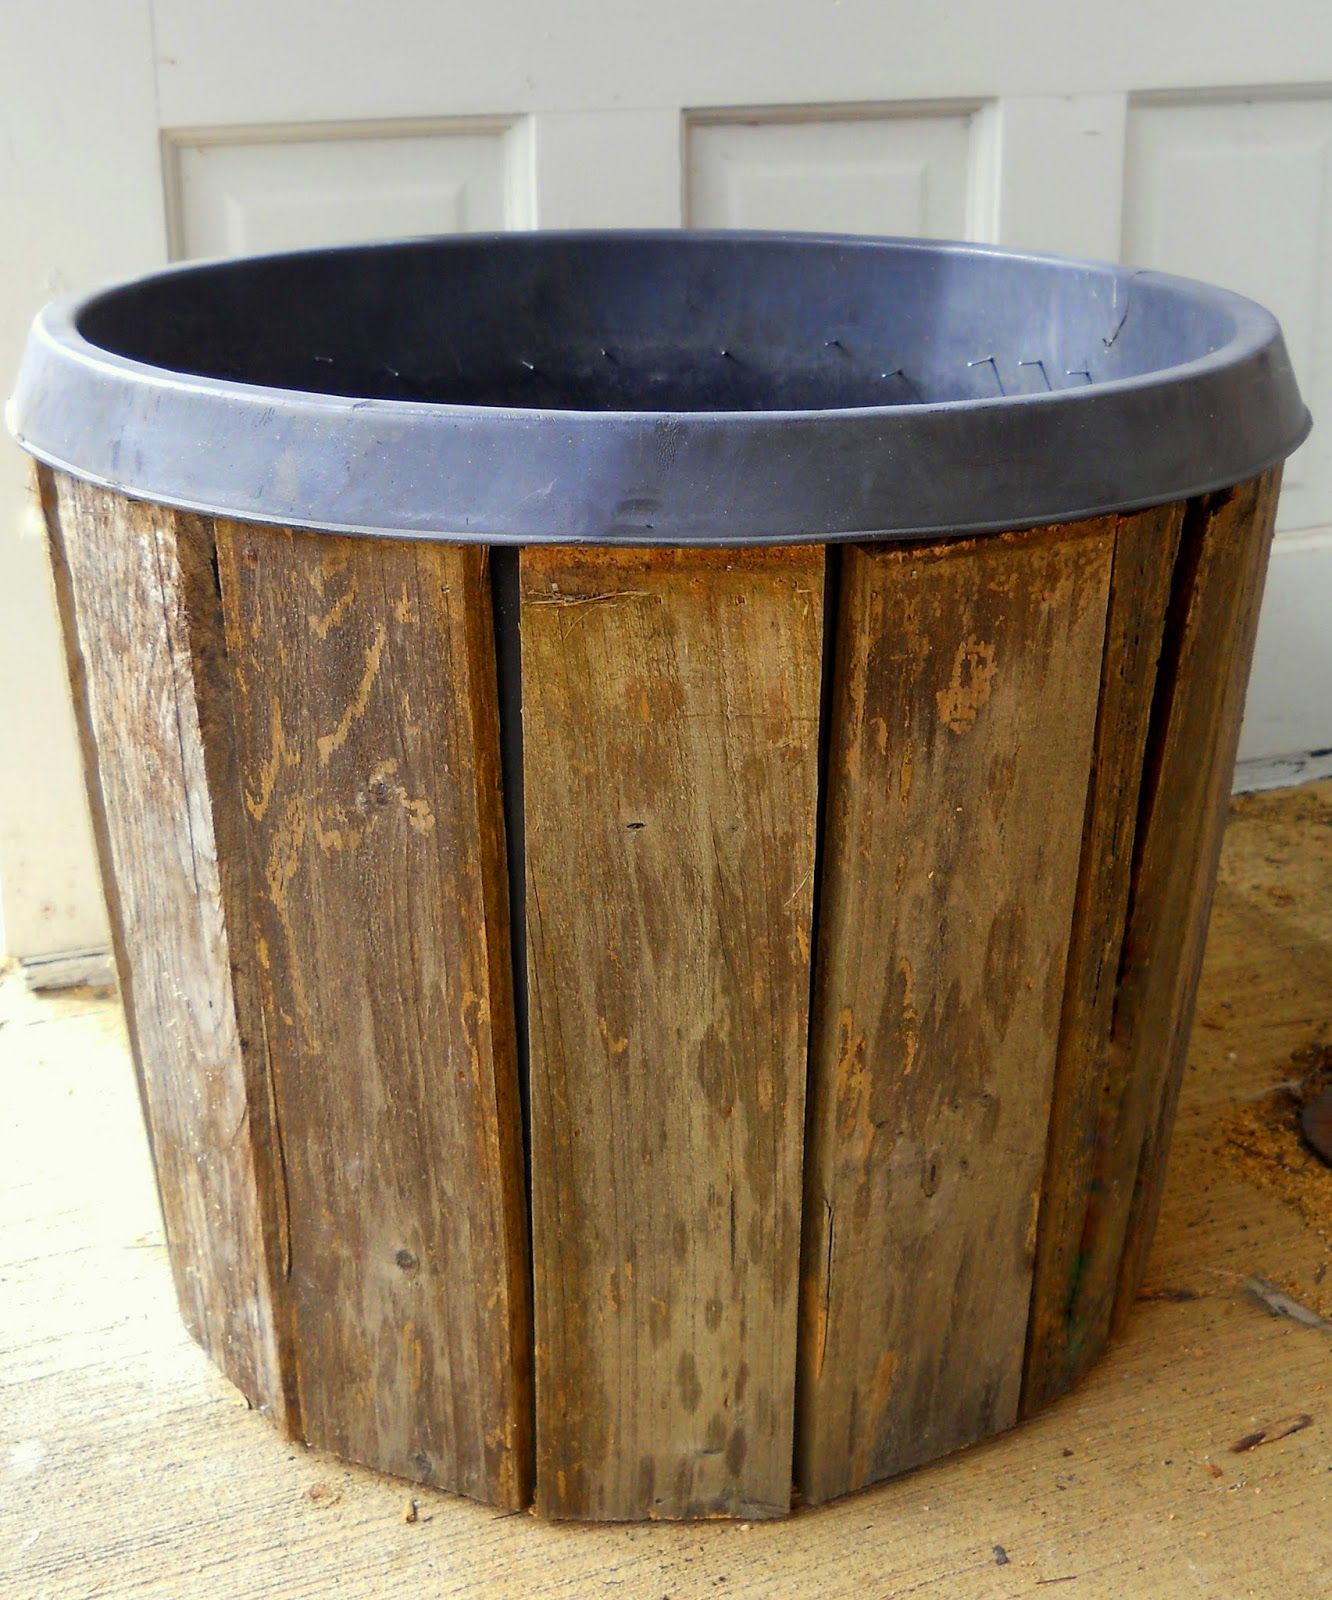 Cover Nursery Pots With Pallet Wood